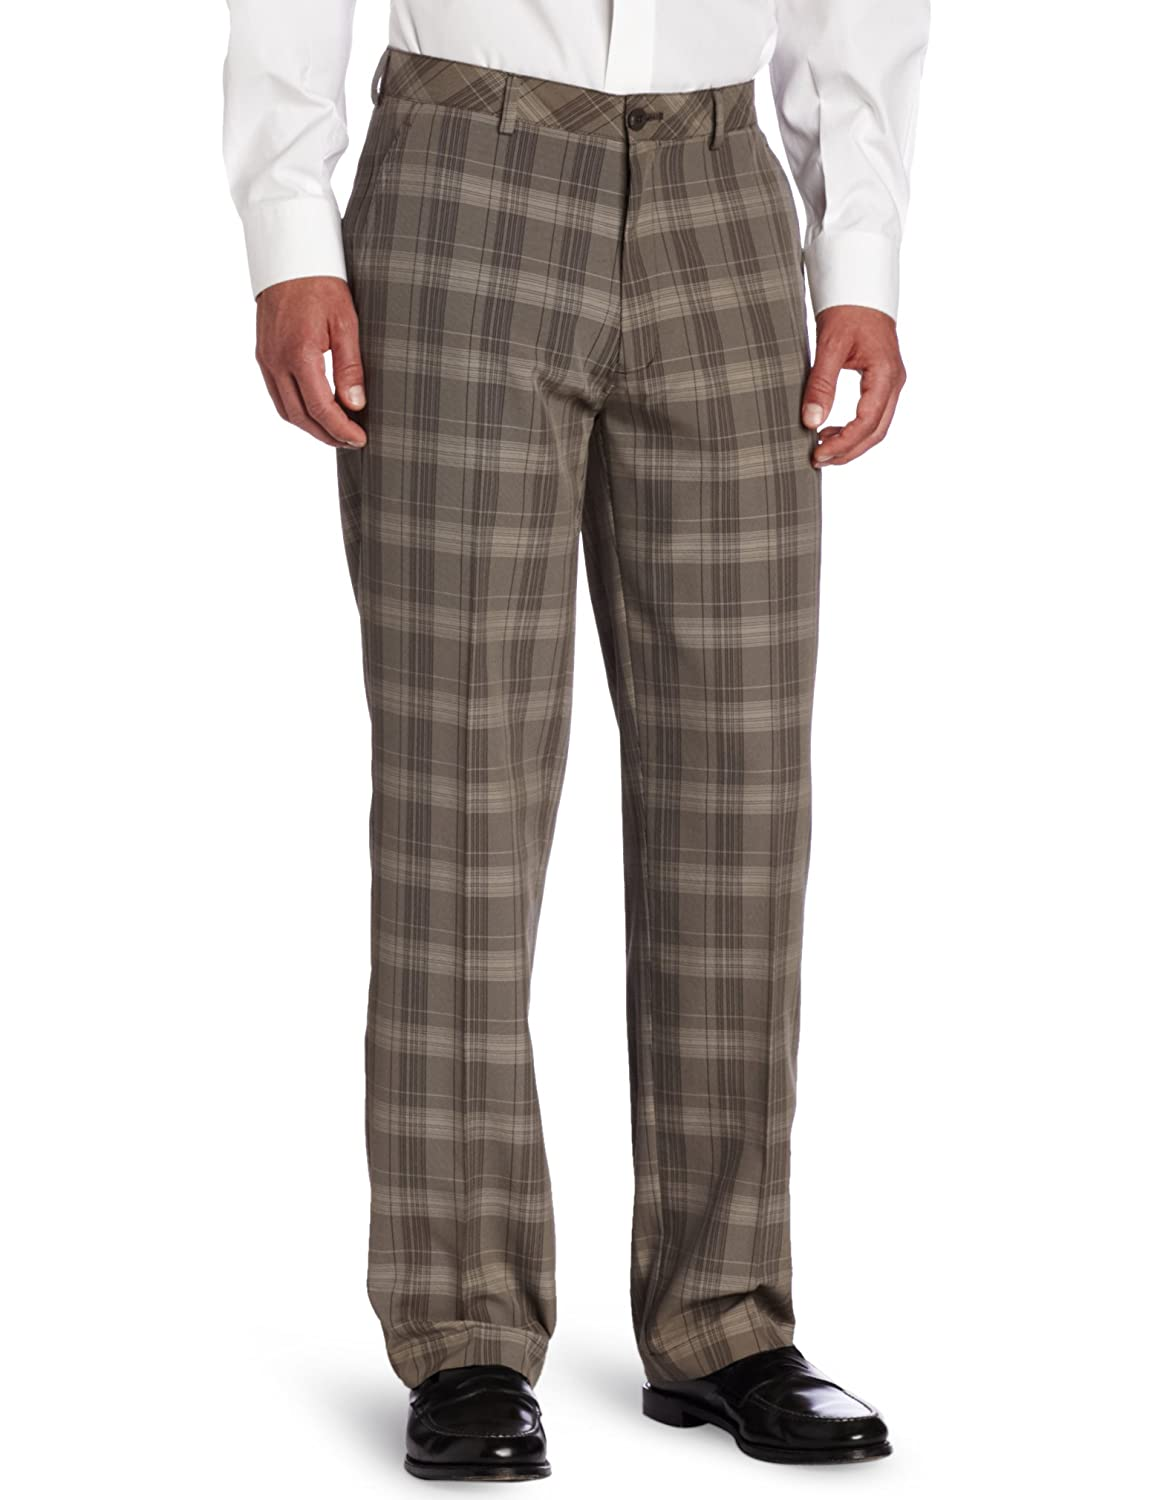 1920s Men's Pants, Trousers, Plus Fours, Knickers Haggar Glen Plaid Straight Fit Flat Front Pant $49.19 AT vintagedancer.com